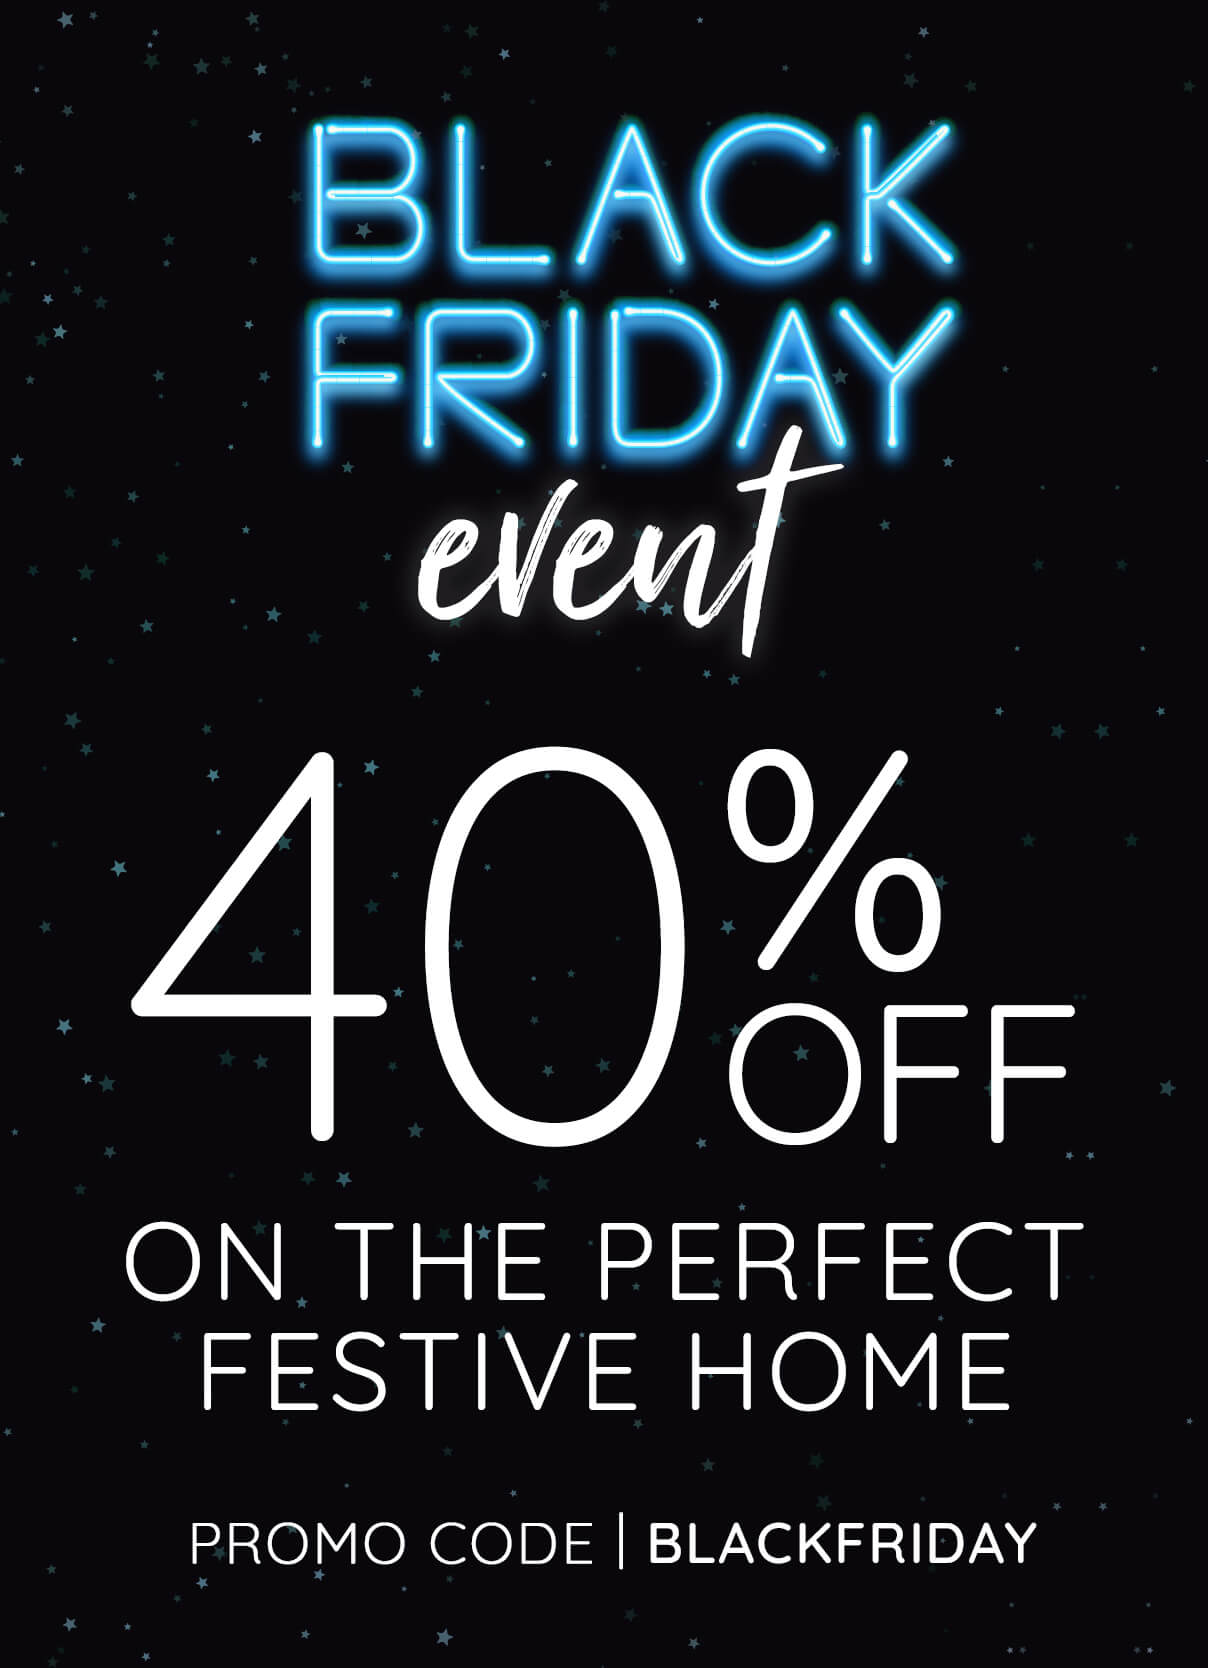 Black Friday Event - 40% Off On The Perfect Festive Home